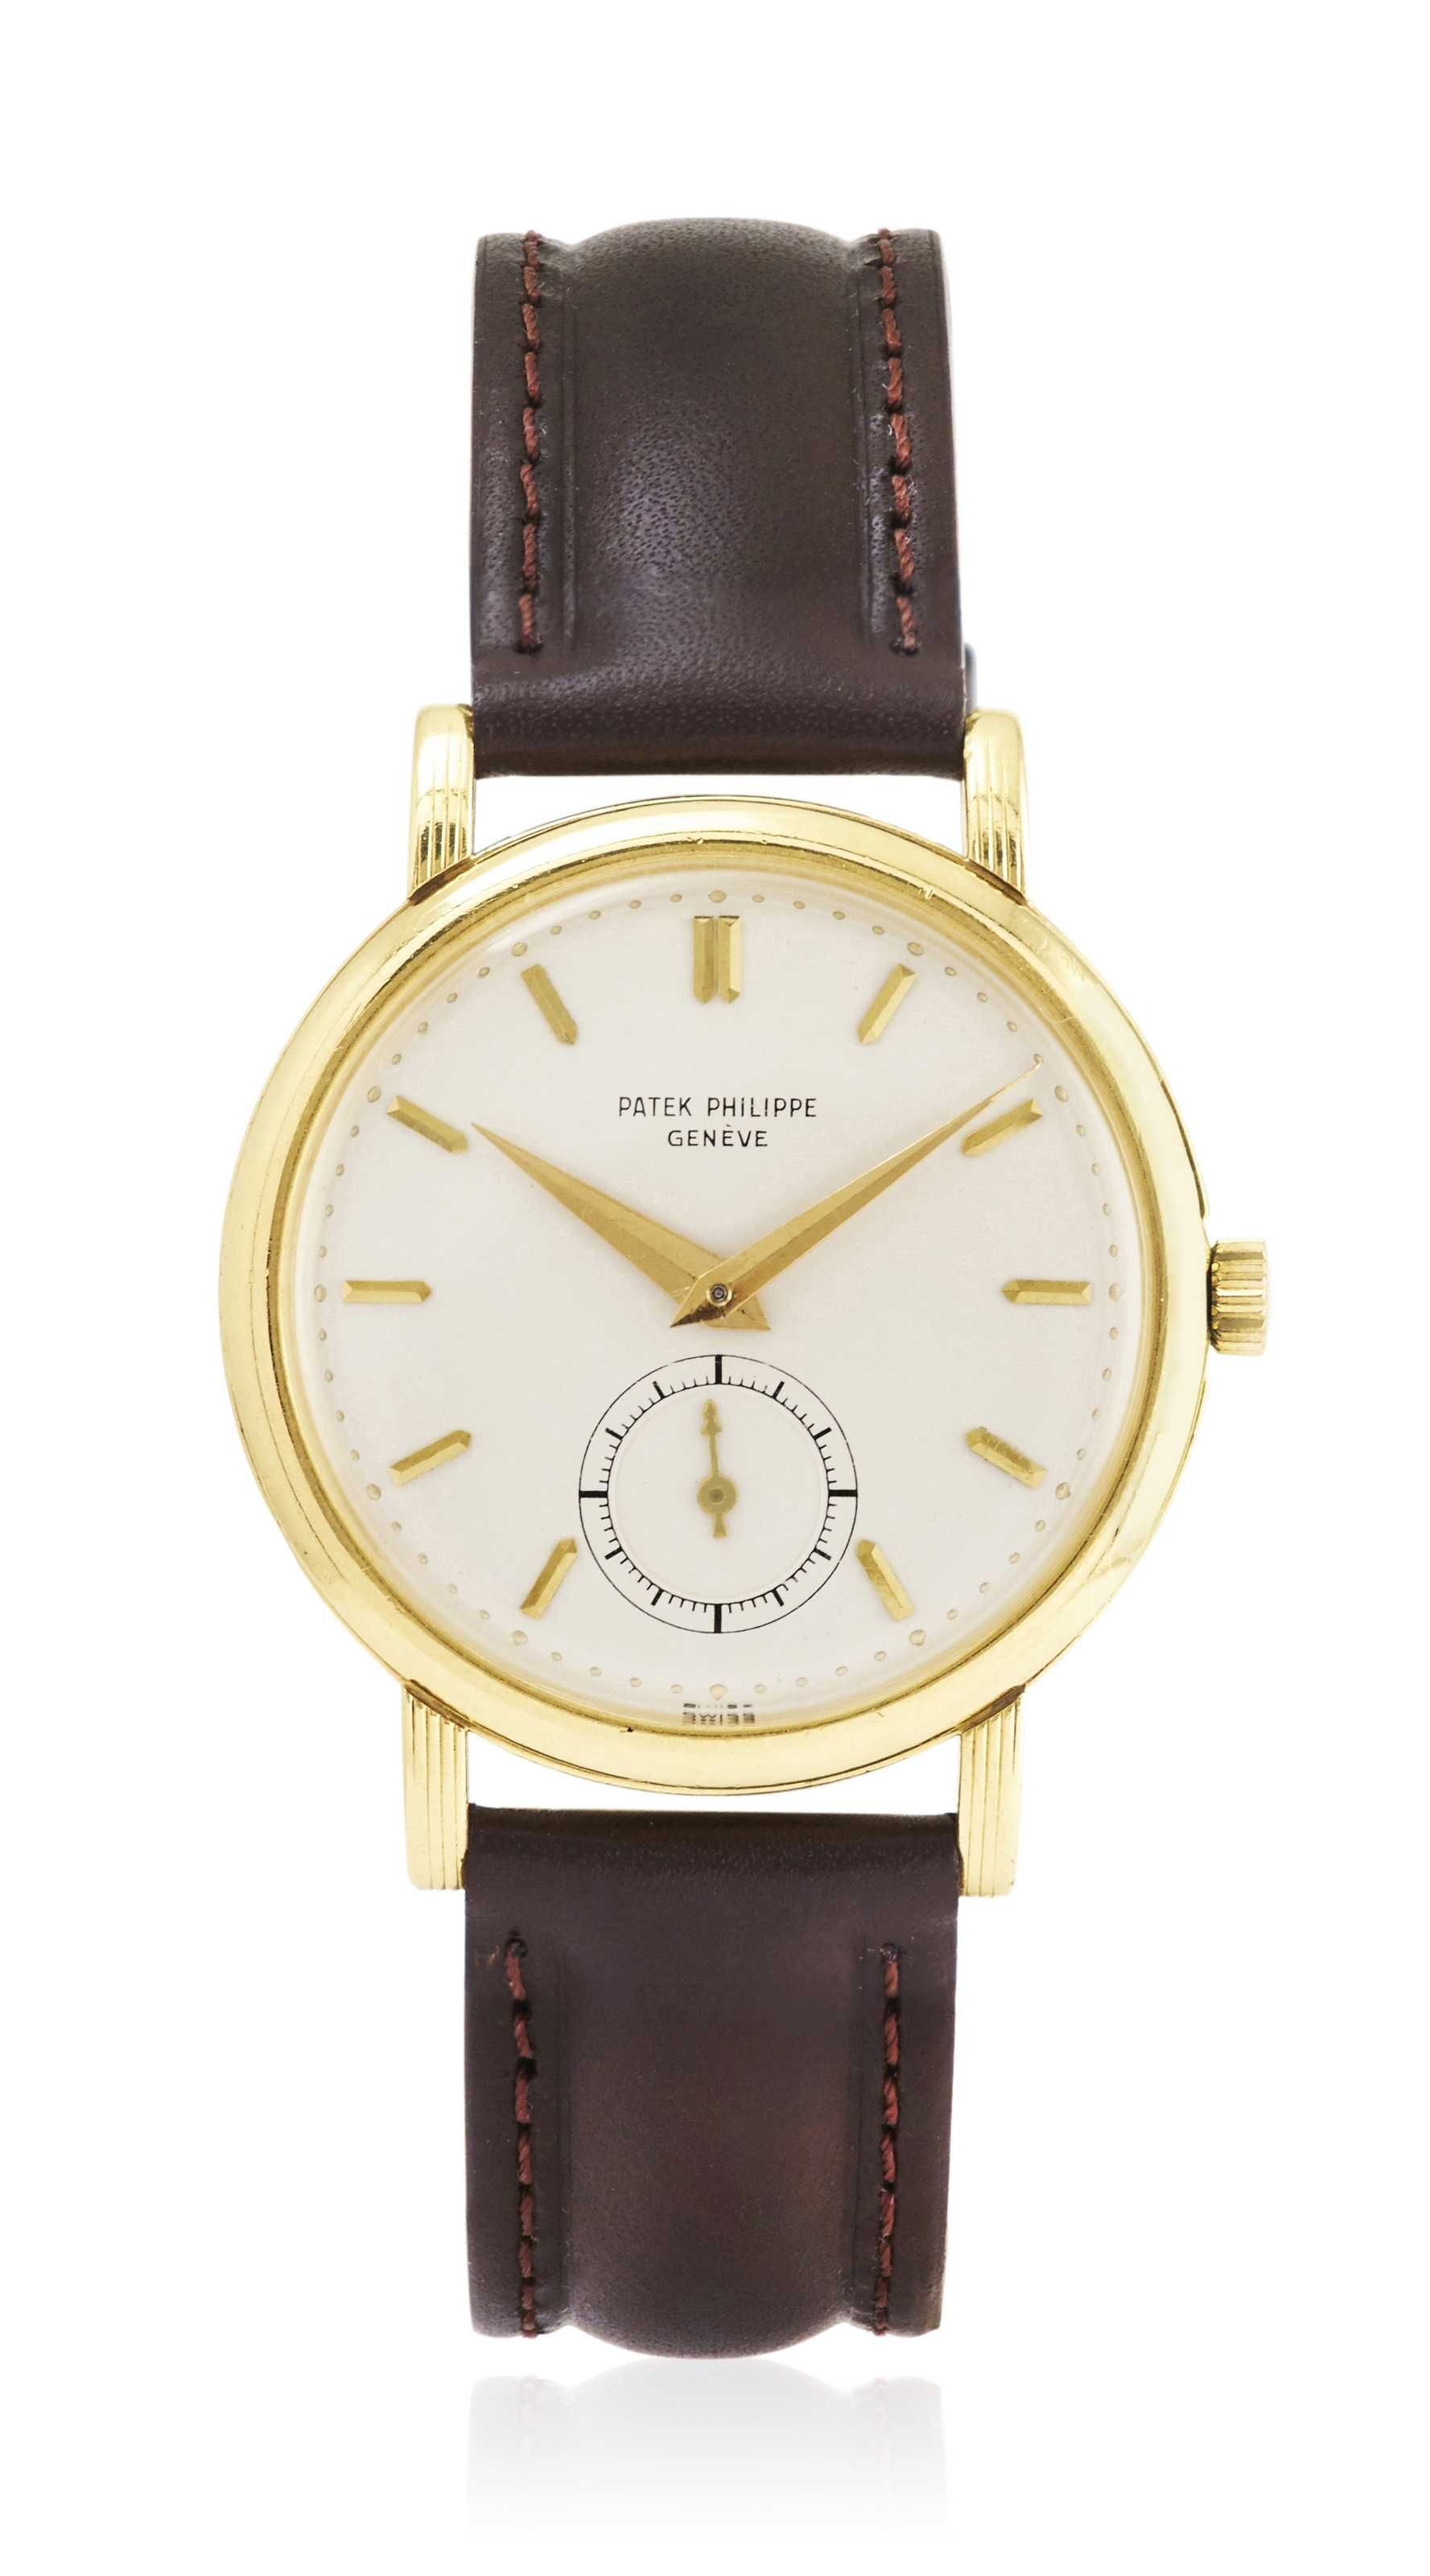 Patek Philippe oversized Calatrava, reference 2511, 18k yellow gold.